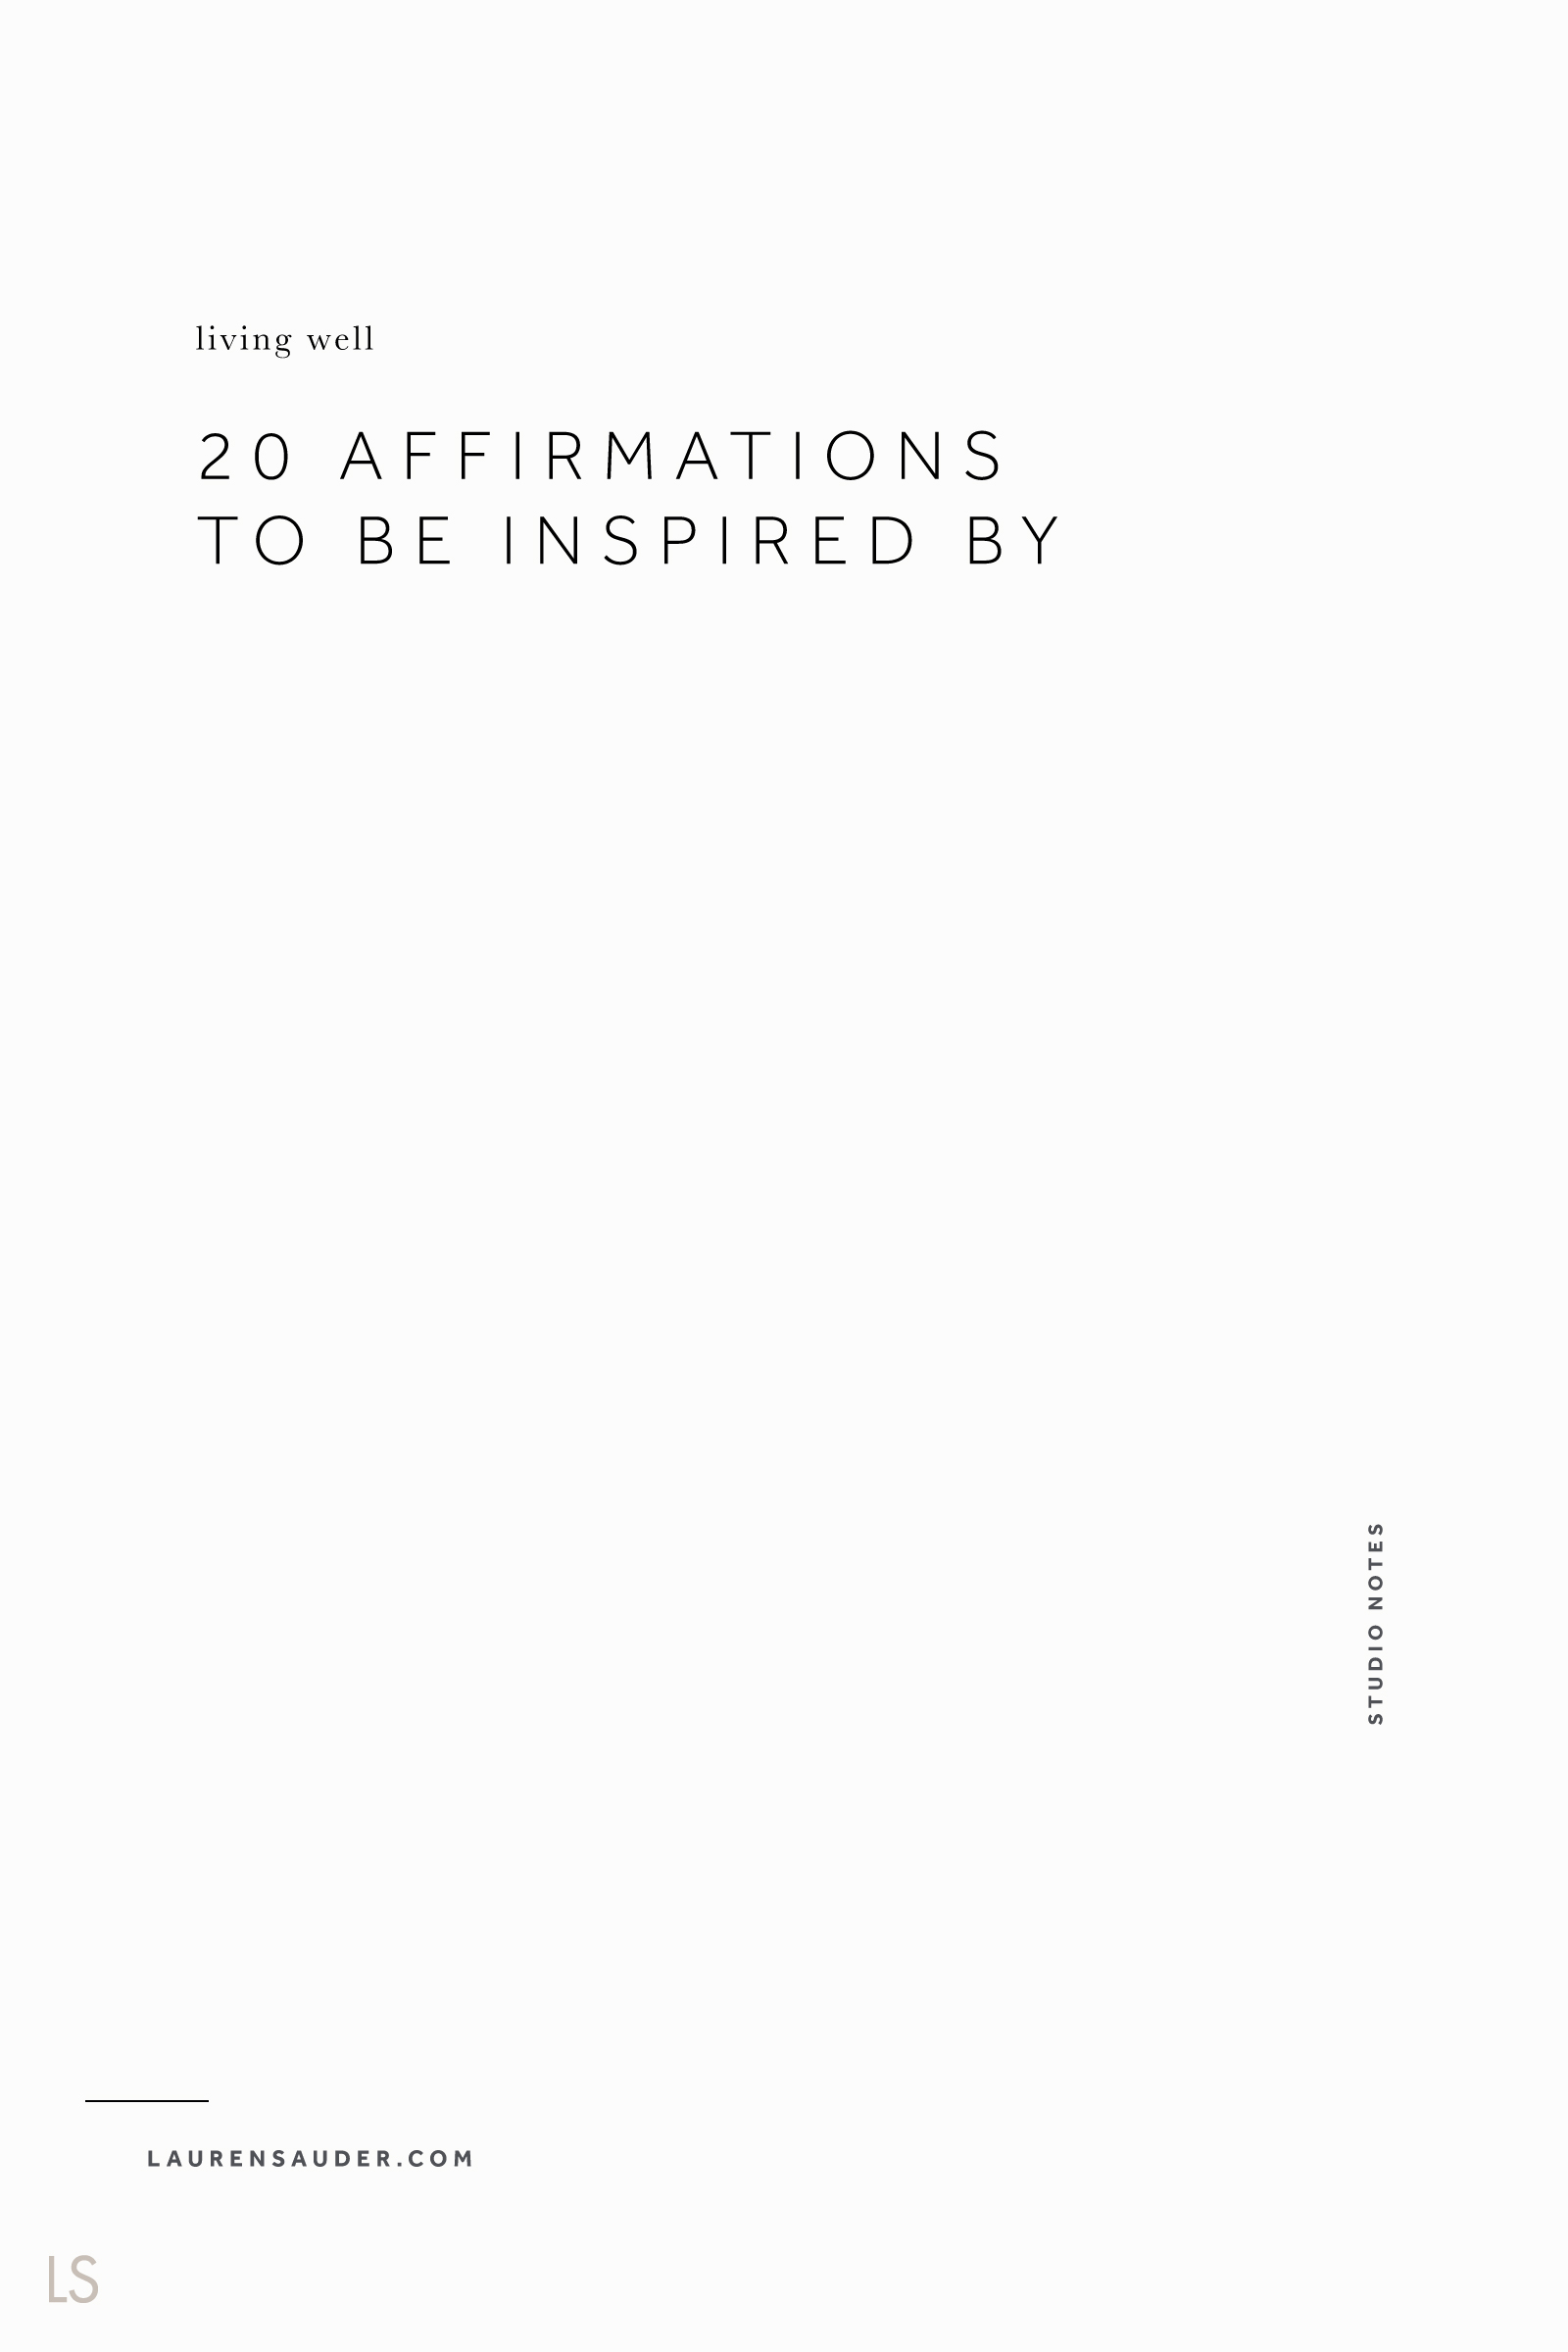 20 Affirmations to be Inspired By - Lauren Sauder #affirmations #routines #dailyroutines affirmations for women, affirmations for creatives, affirmations positive, affirmations quotes, affirmation ideas